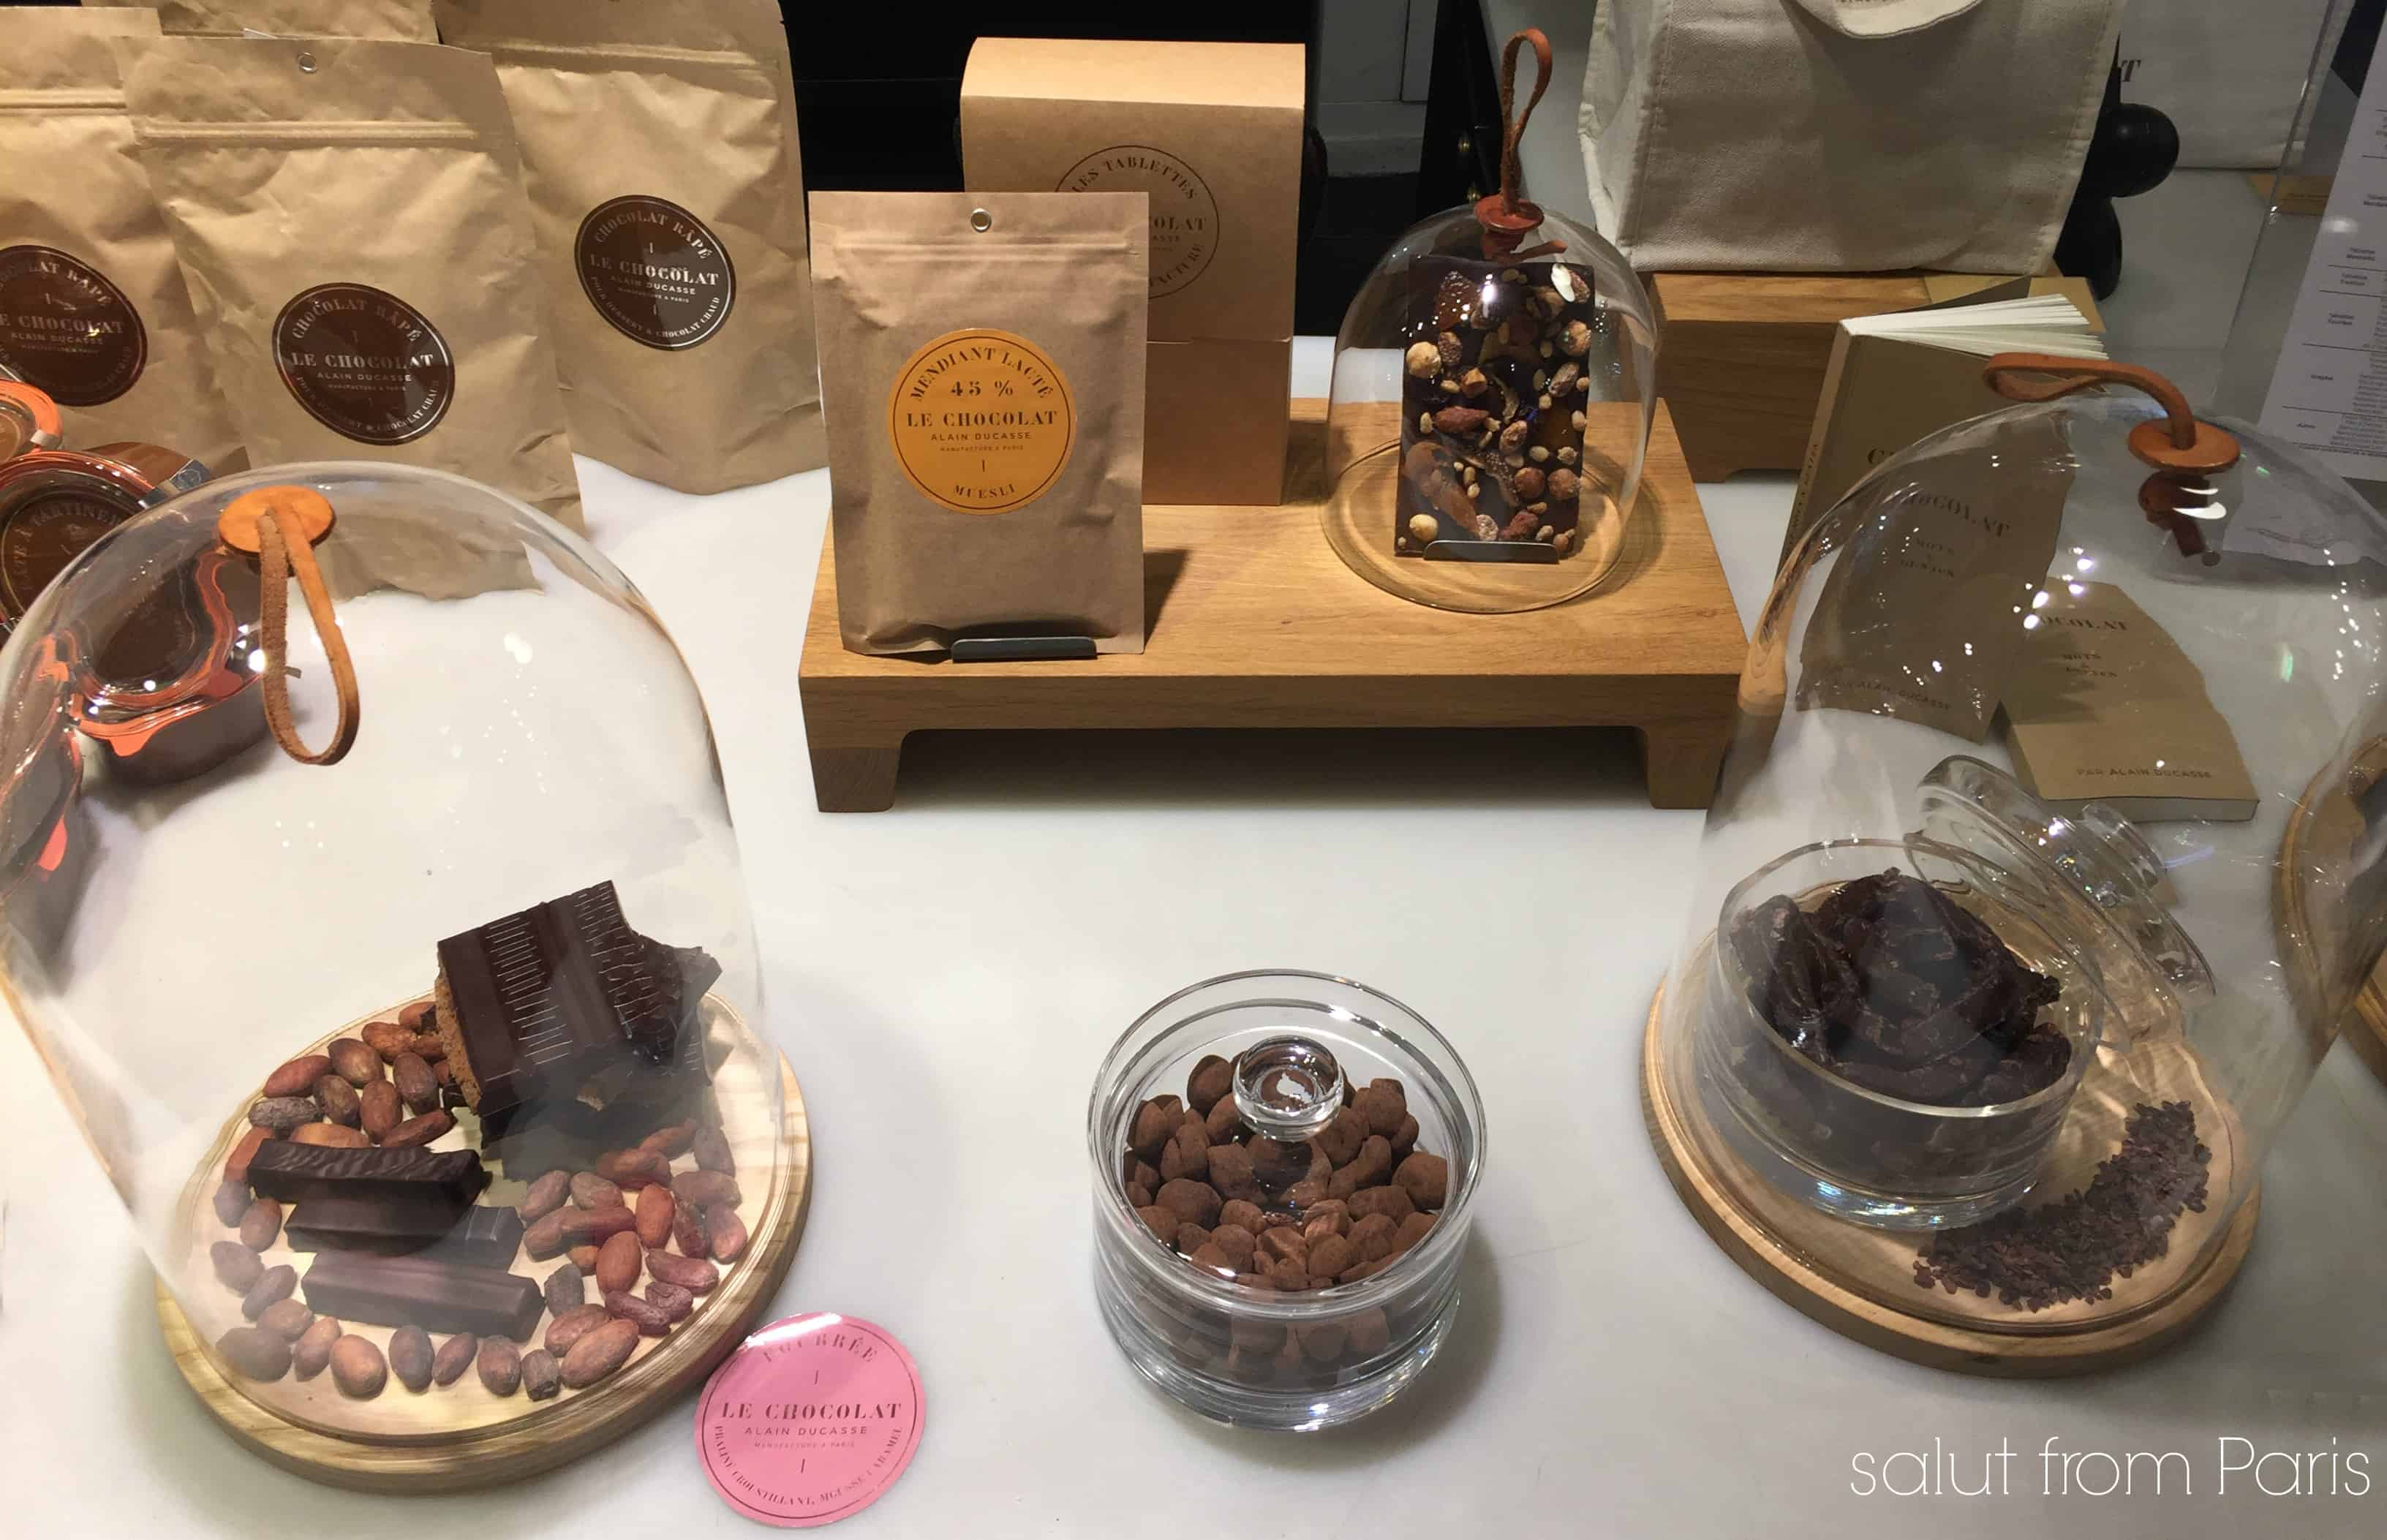 Le Gourmet is the food market of the Galeries Lafayette in Paris. The grocery store hosts on the street level a gourmet and food hall. Chocolates are just one of the yummy treats